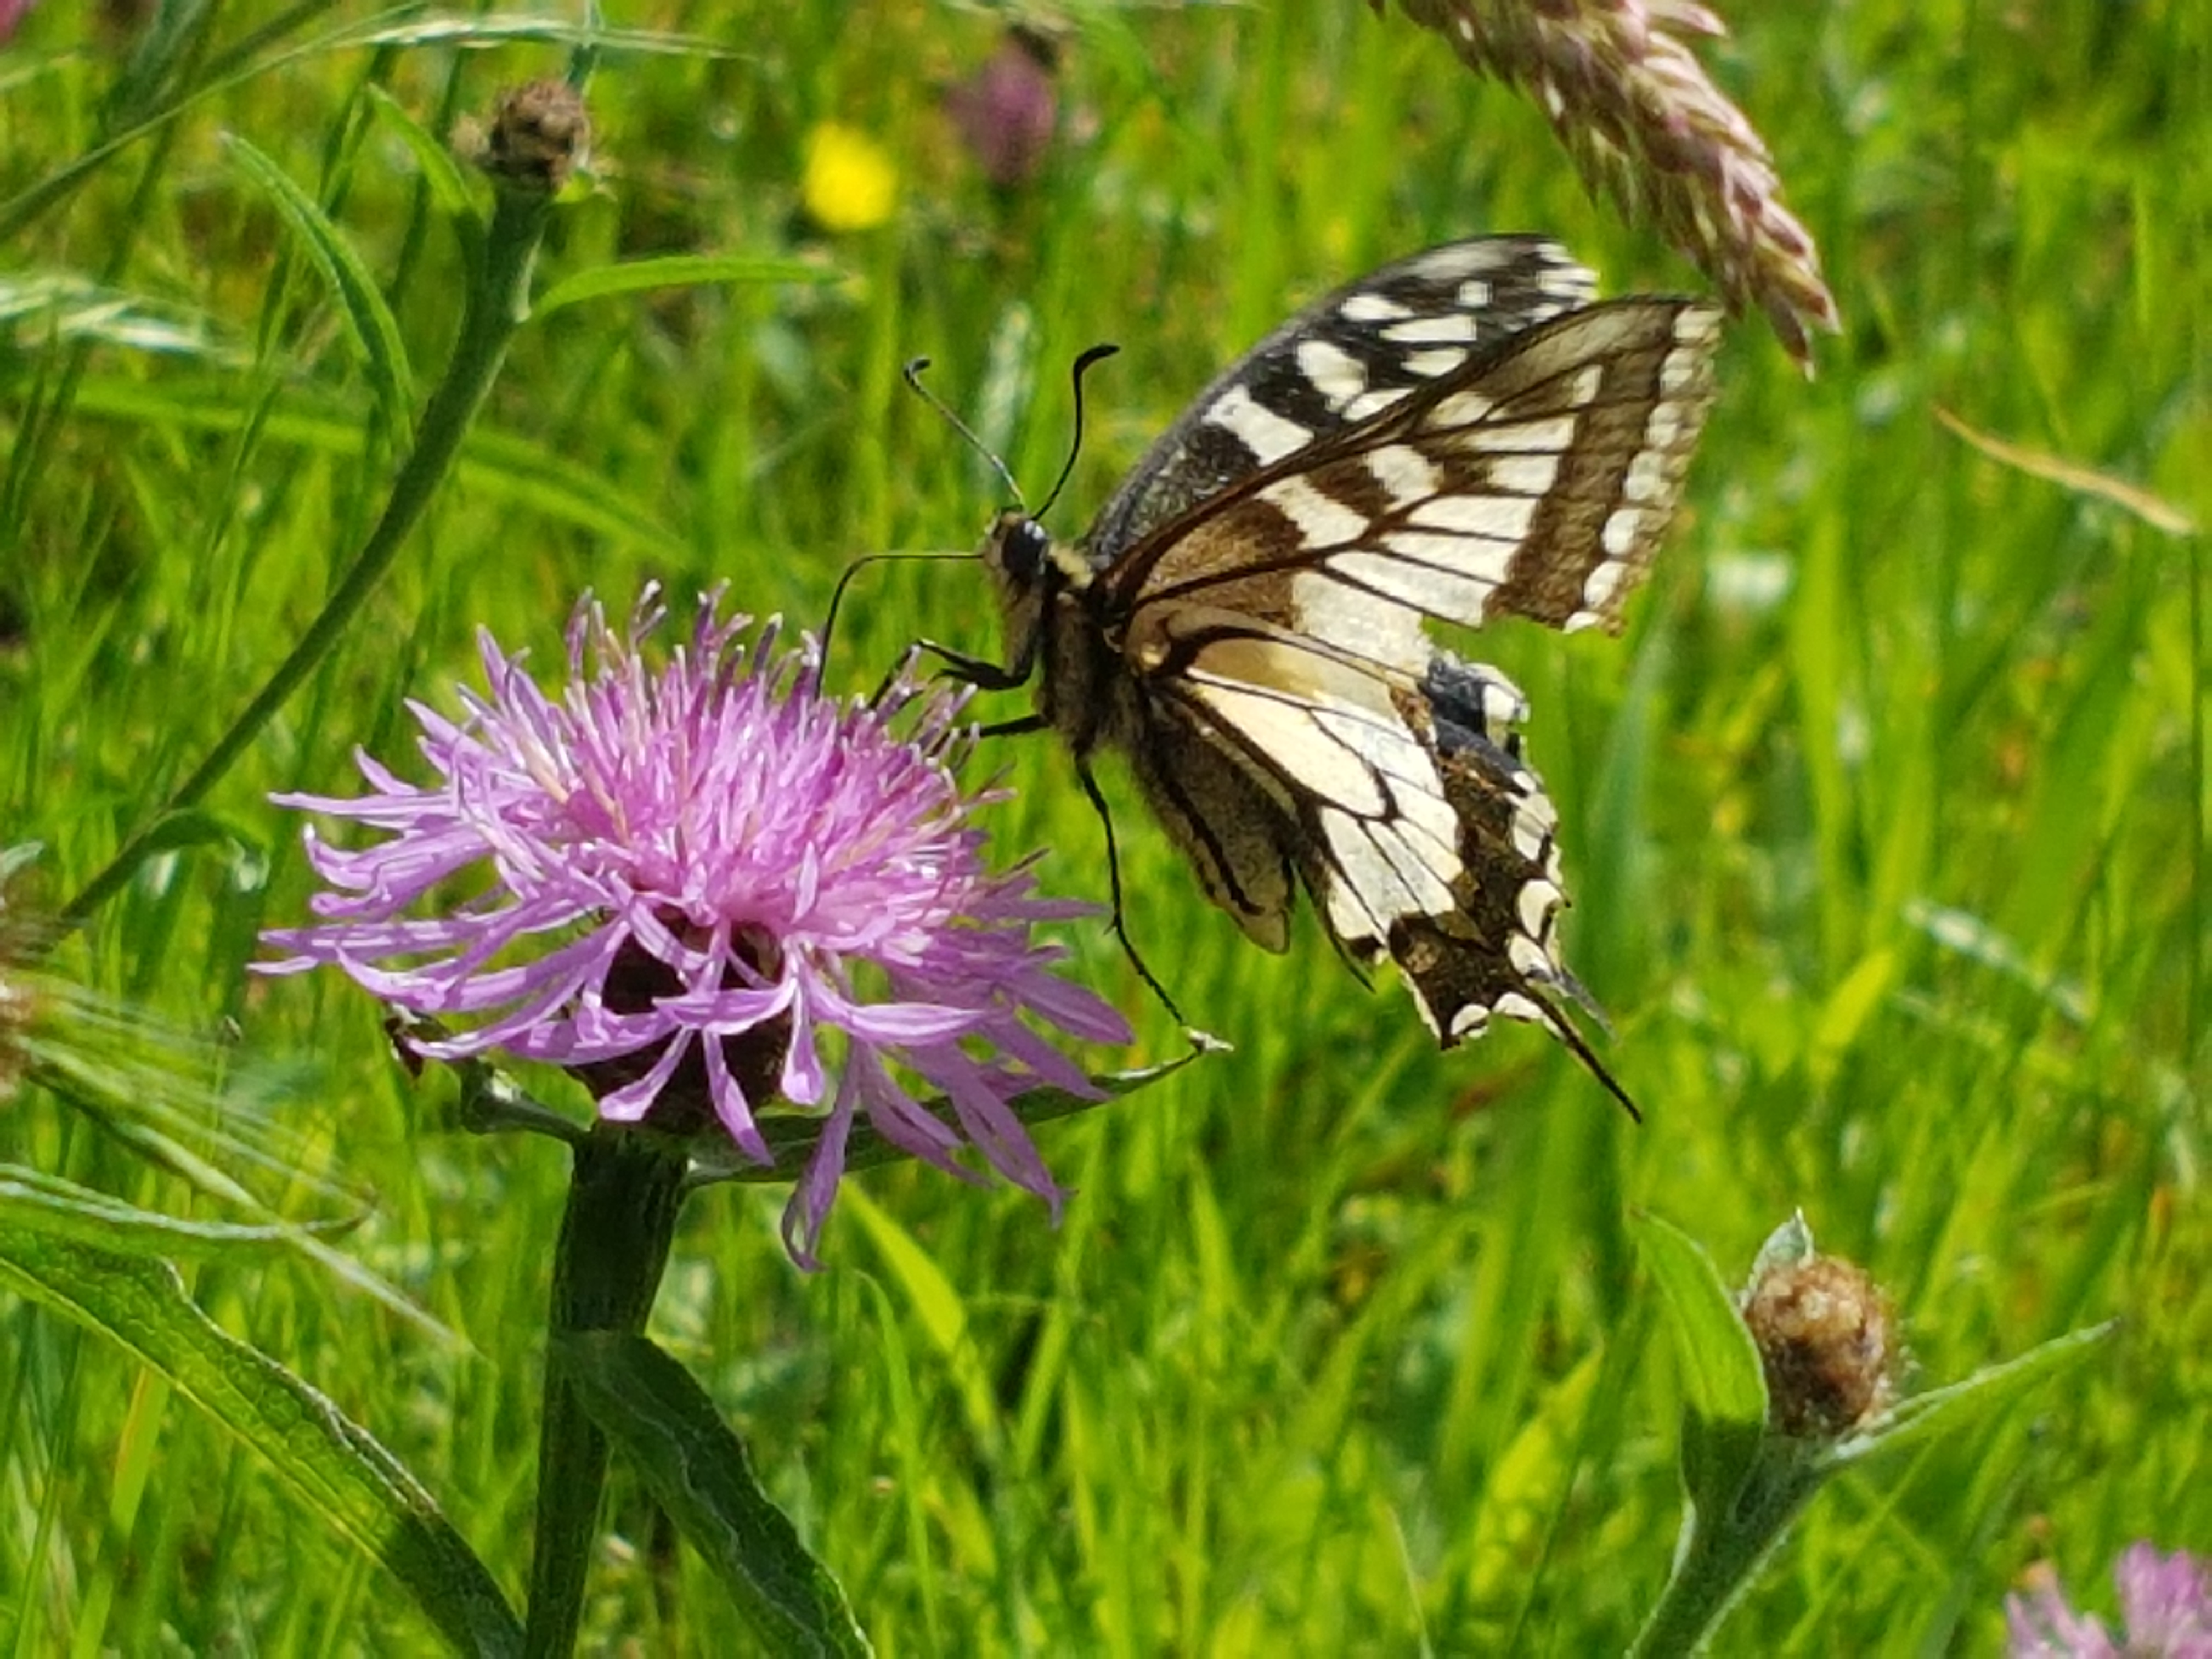 Un papillon (Machaon) en pleine nature